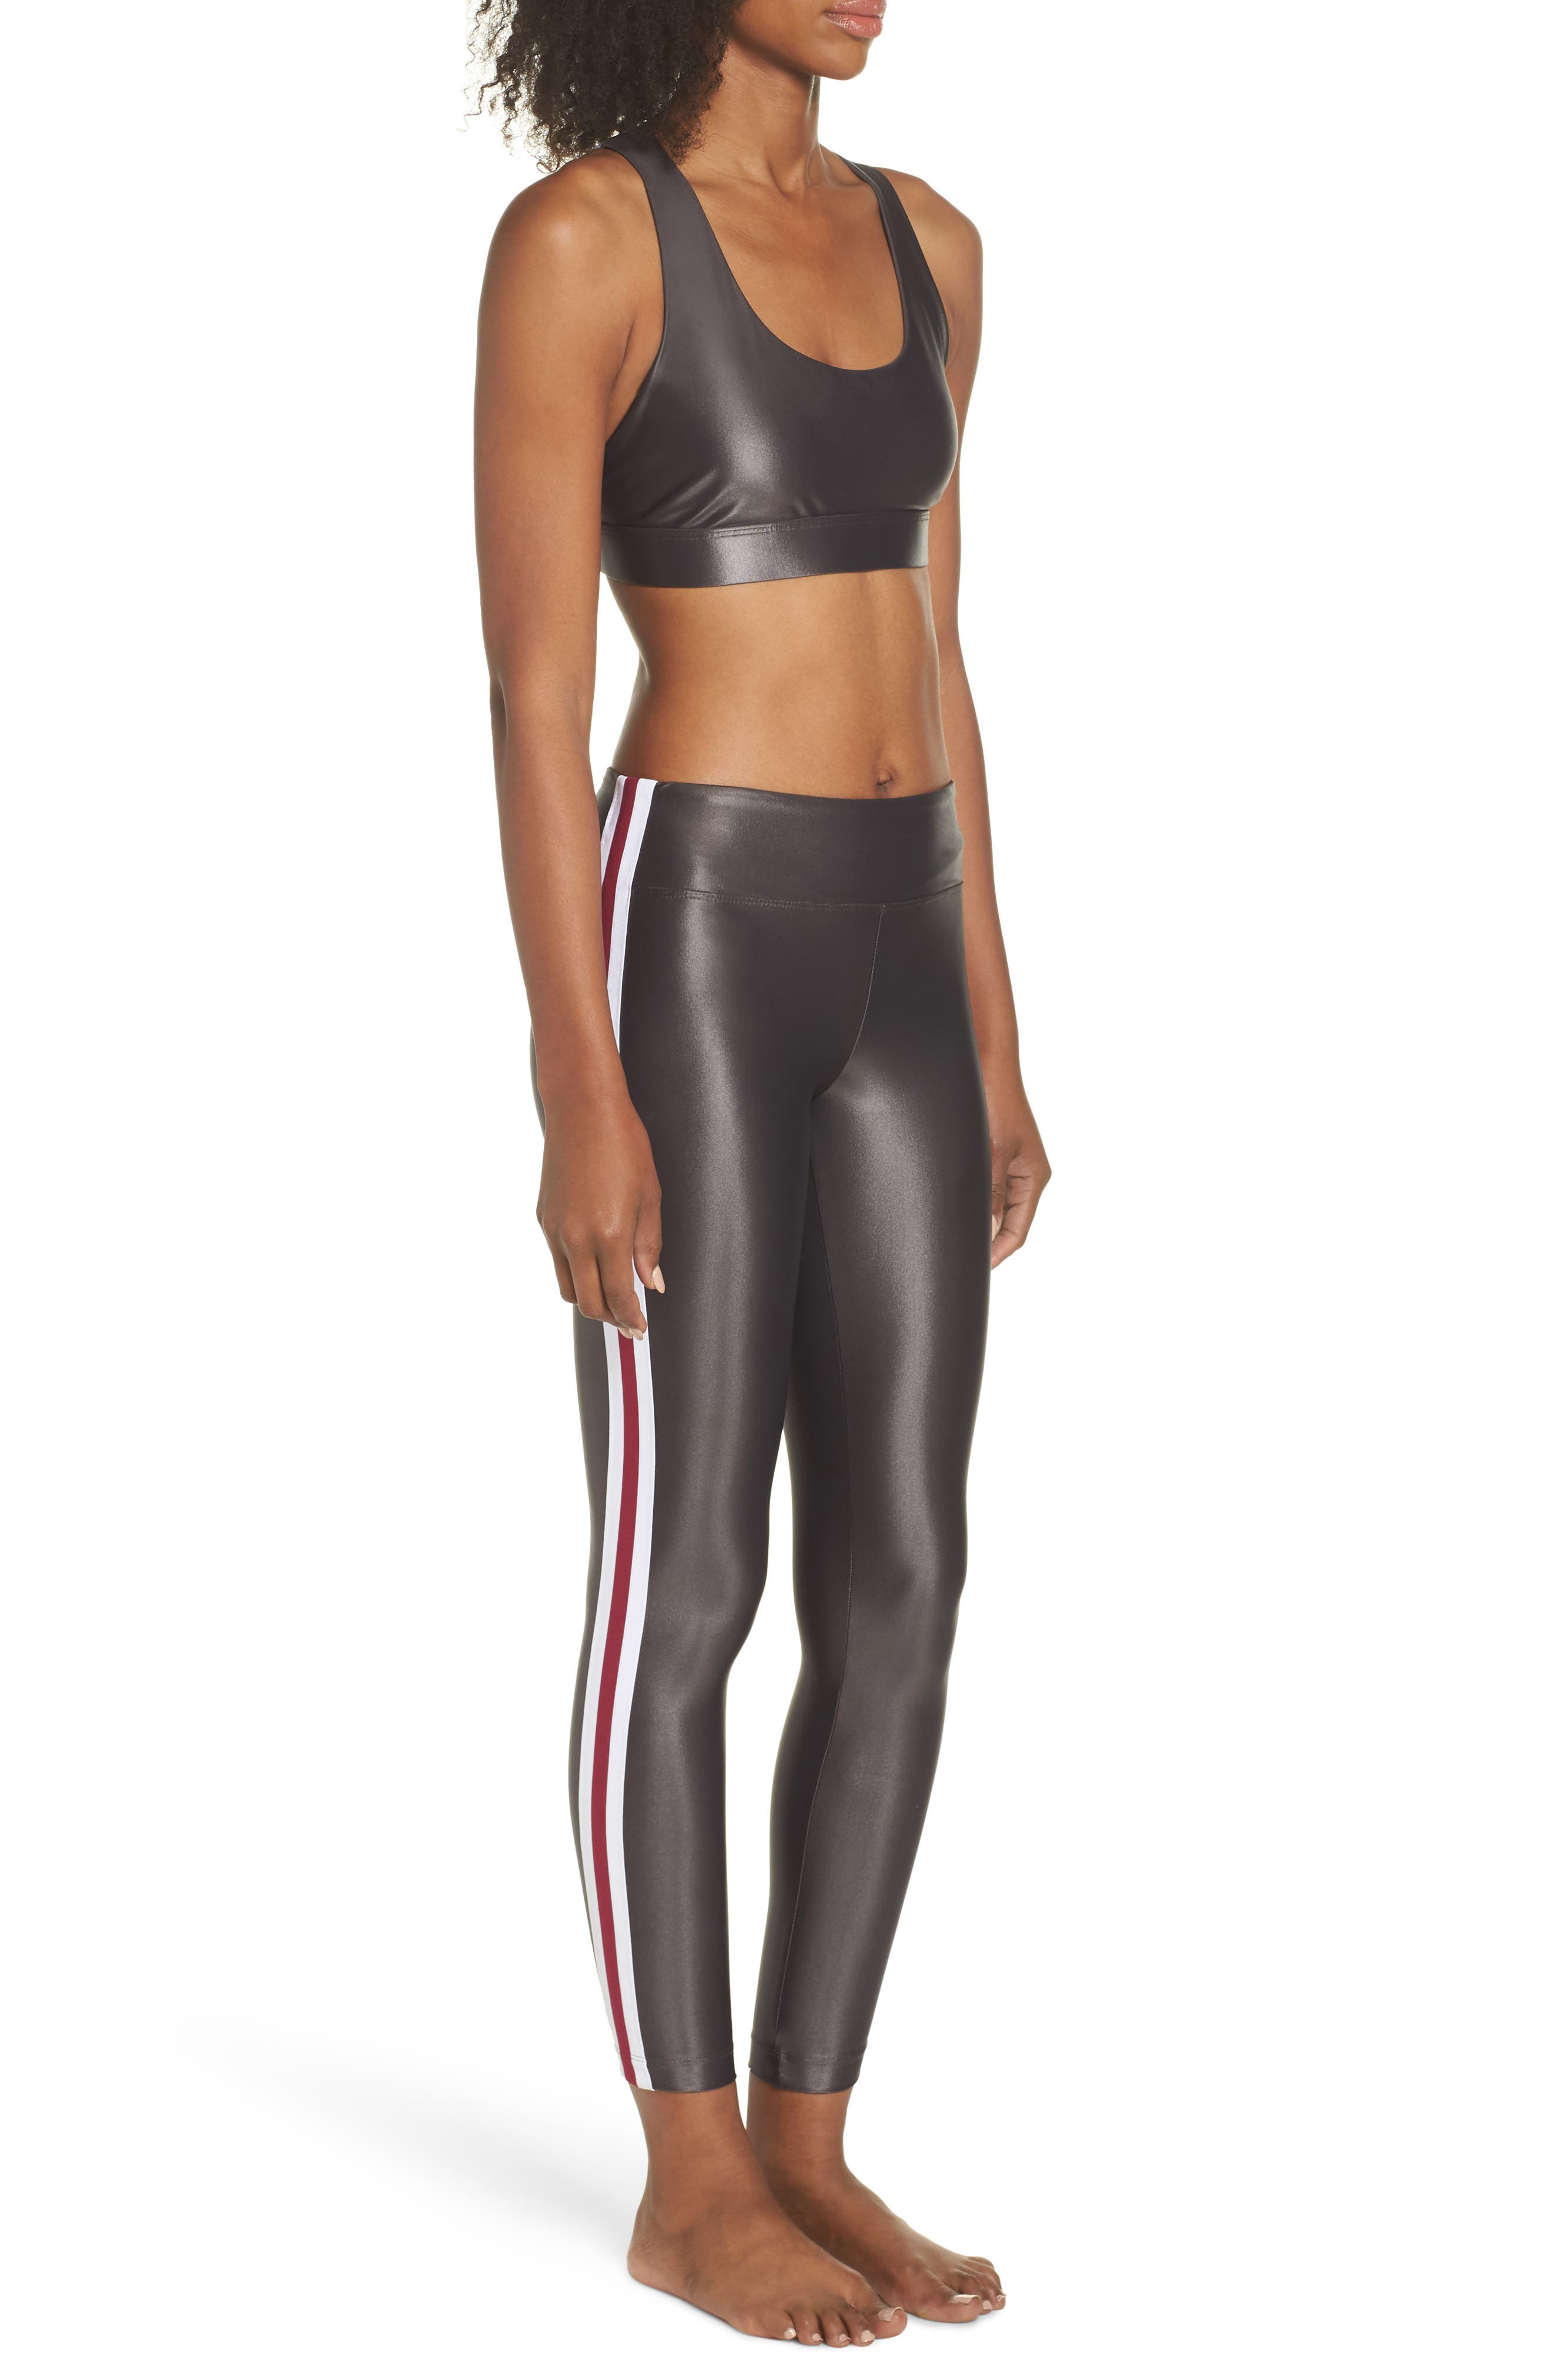 Fame Sports Bra,                             Alternate thumbnail 10, color,                             LEAD